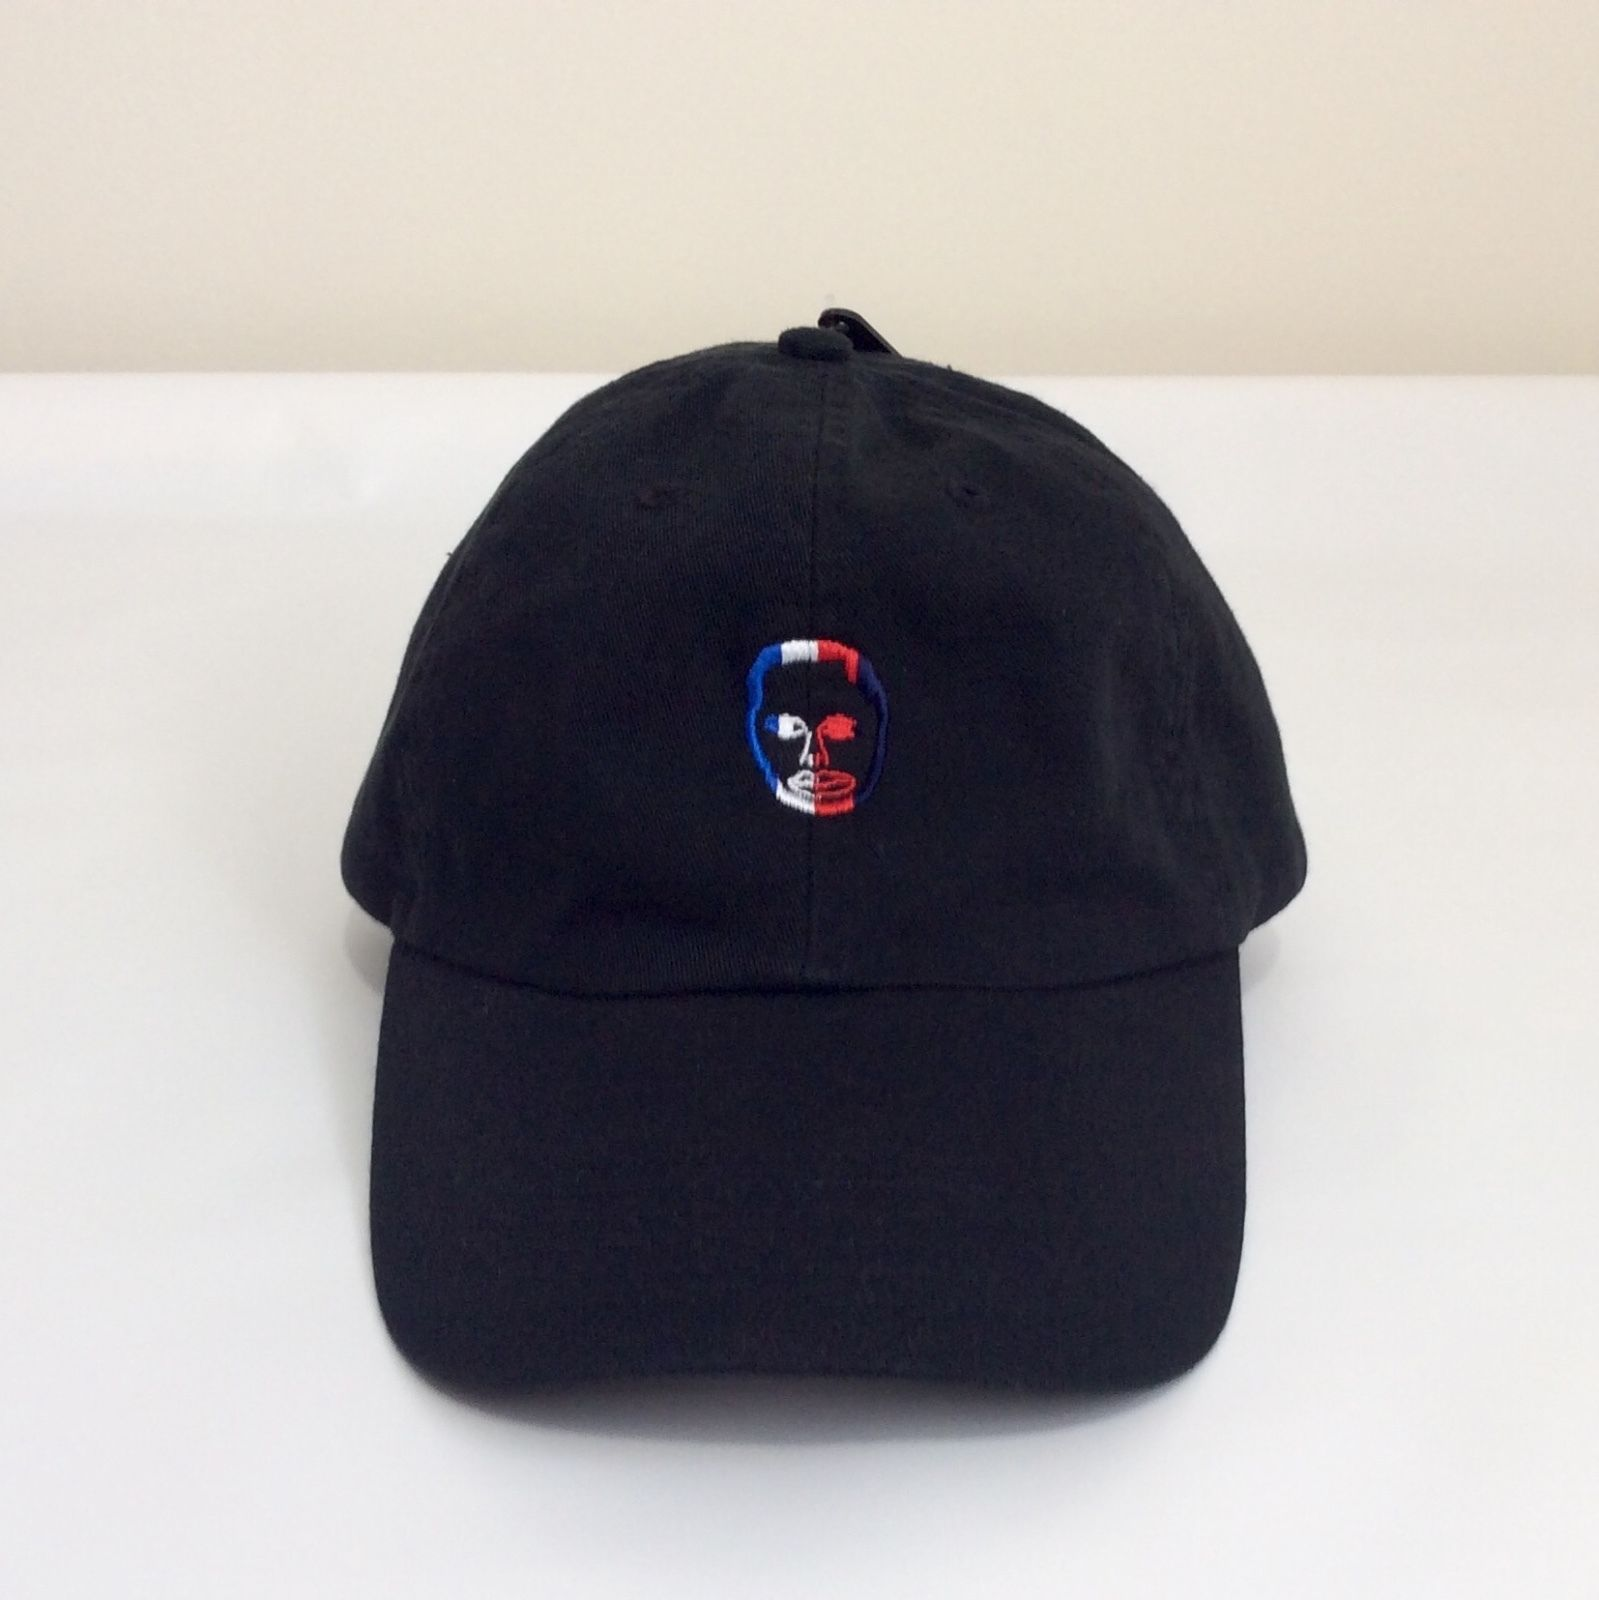 Earl Sweatshirt Header Black Men s Baseball Cap Strapback Hat NWT ... d33d3d96241